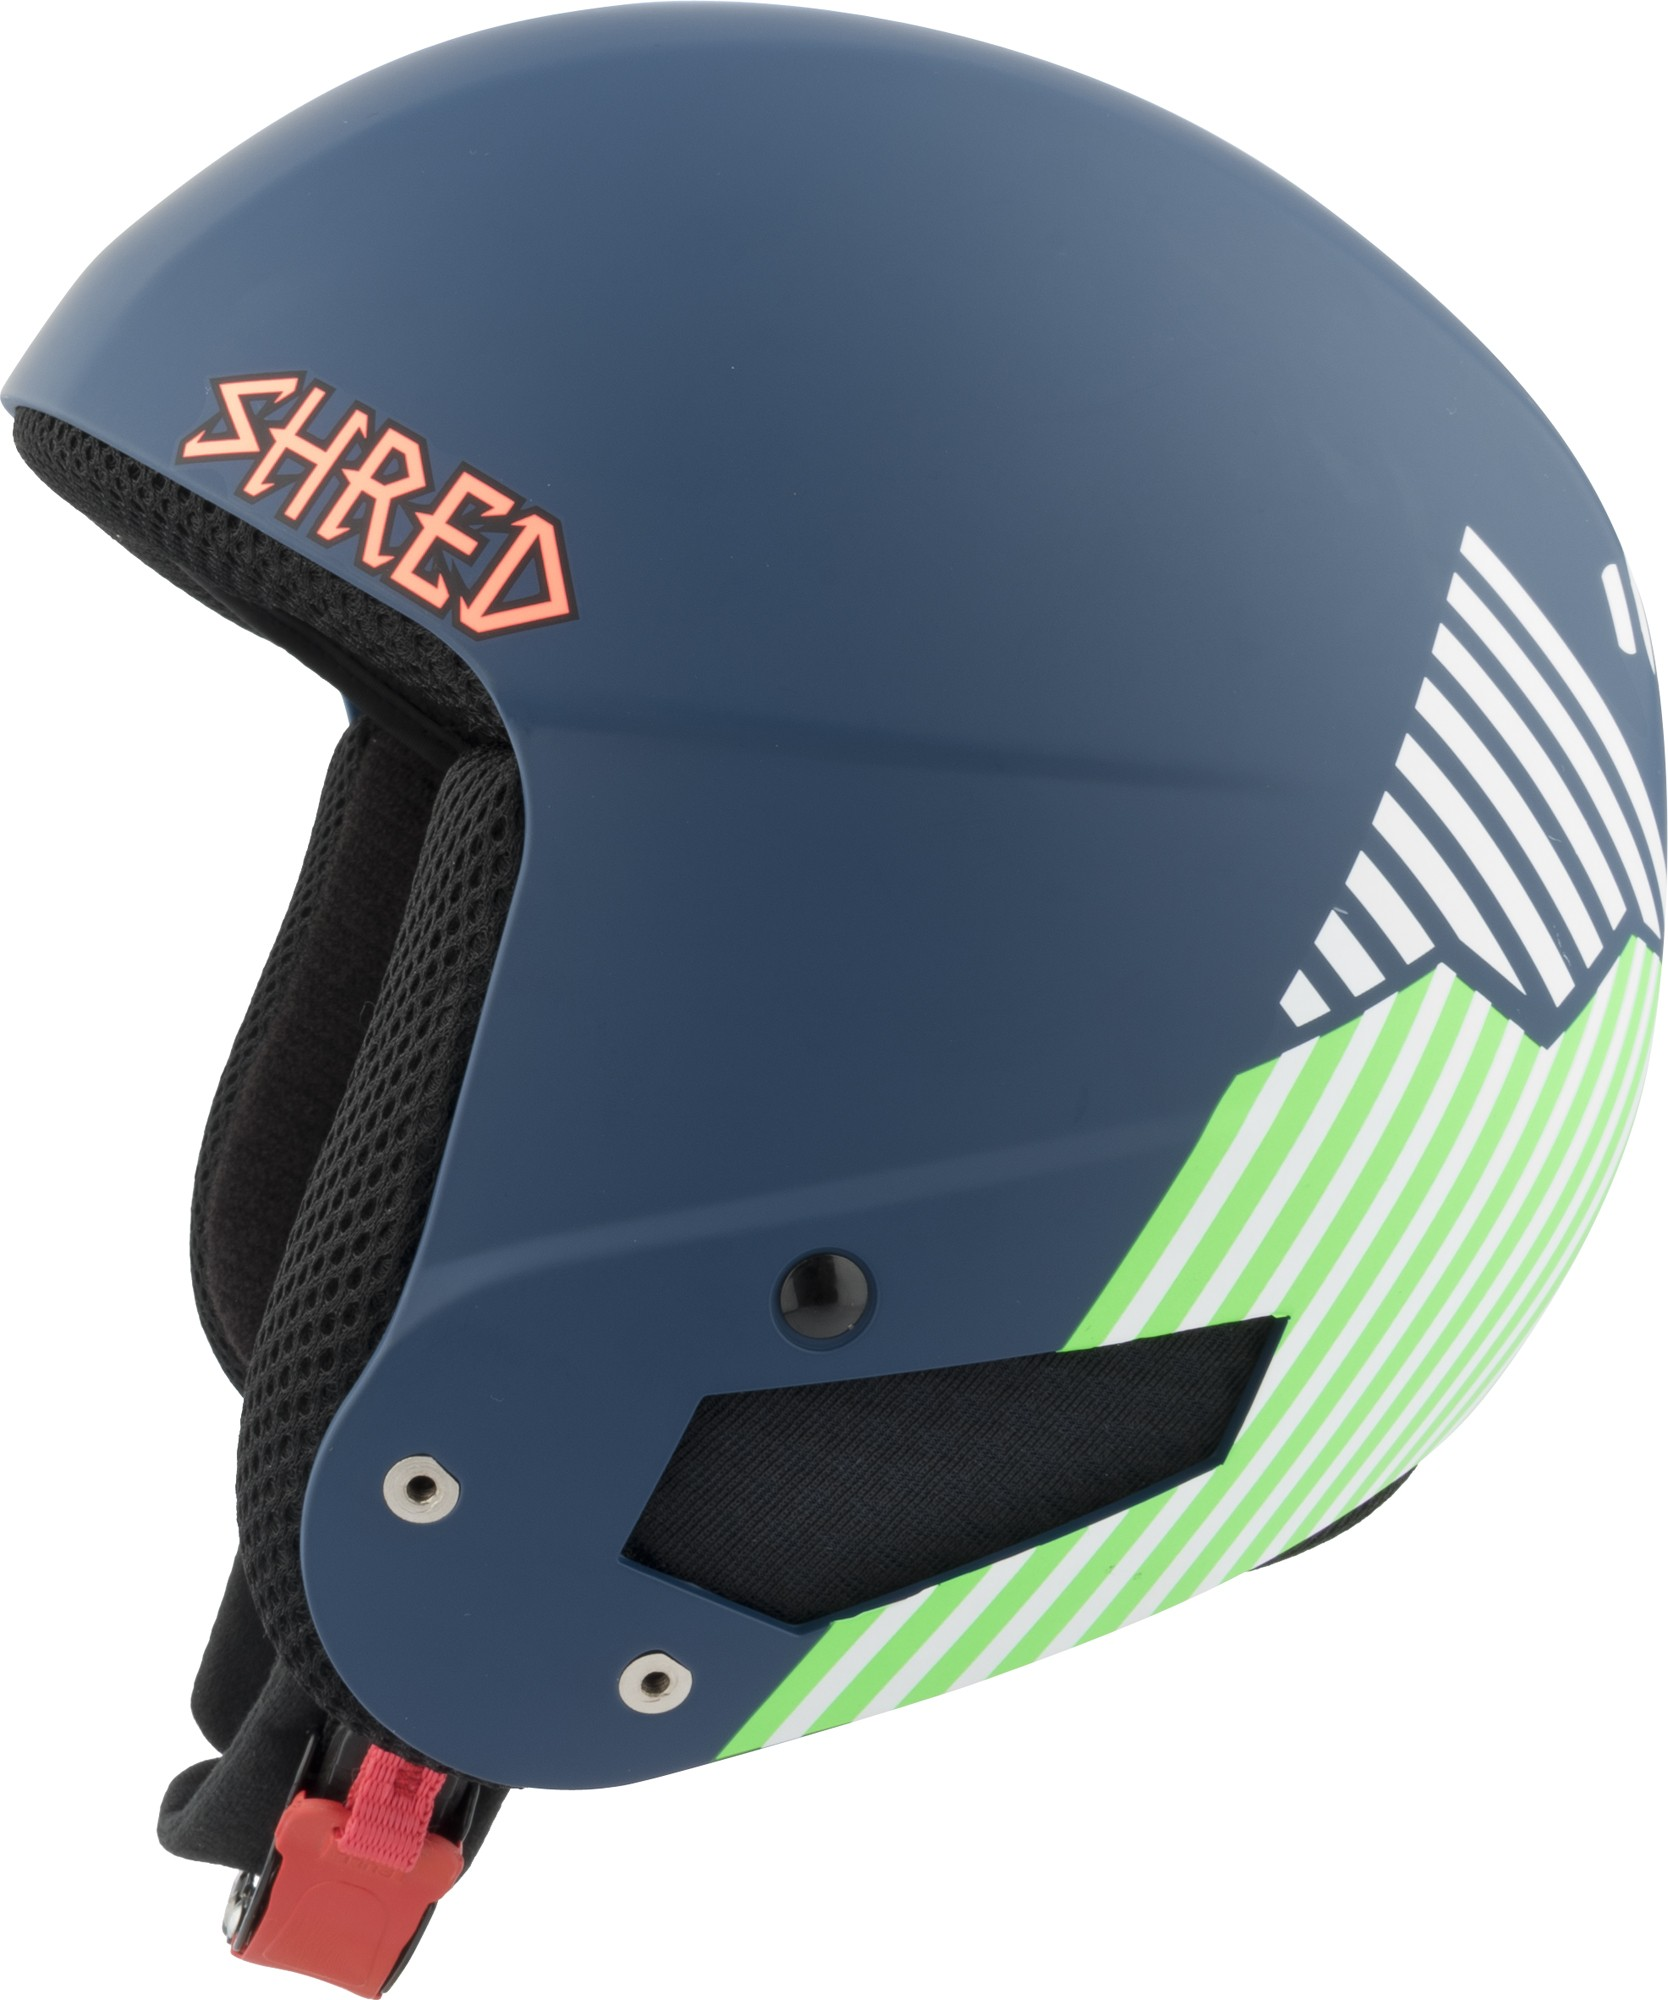 Shred Mega Brain Bucket RH FIS NEEDMORESNOW ski helmet, 2017